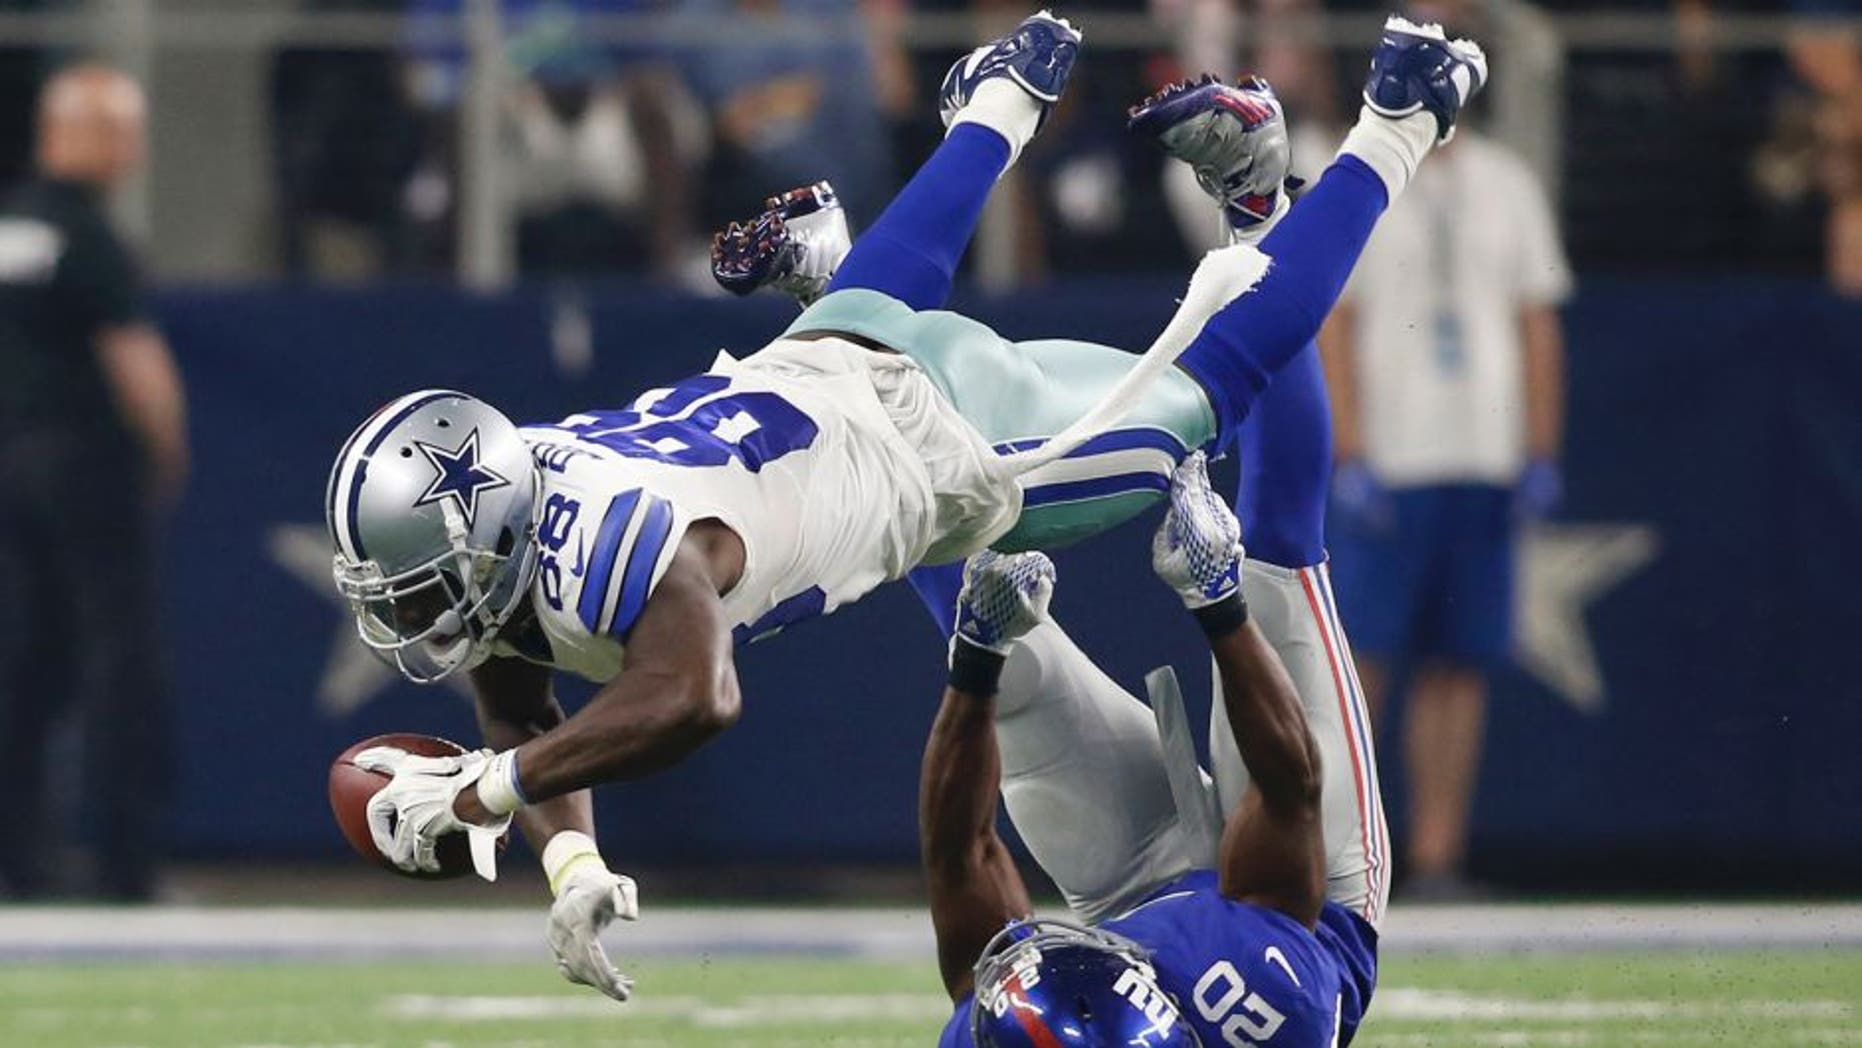 Sep 13, 2015; Arlington, TX, USA; Dallas Cowboys wide receiver Dez Bryant (88) catches the ball as New York Giants cornerback Prince Amukamara (20) tackles at AT&T Stadium. The Cowboys won 27-26. Mandatory Credit: Tim Heitman-USA TODAY Sports